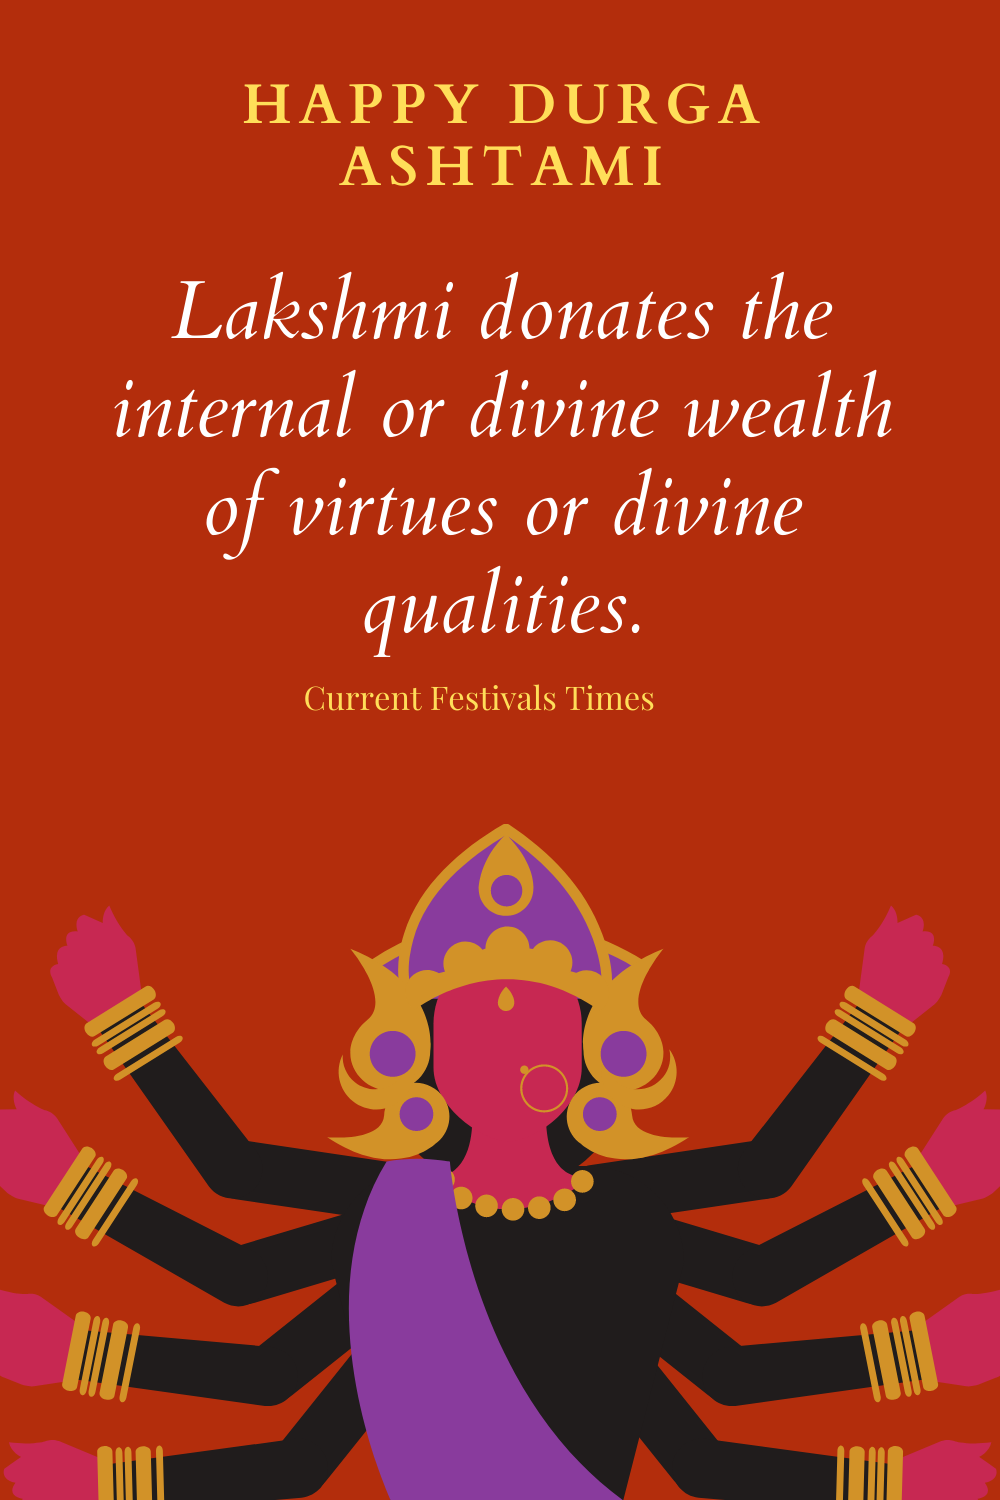 durga ashtami quotes in english